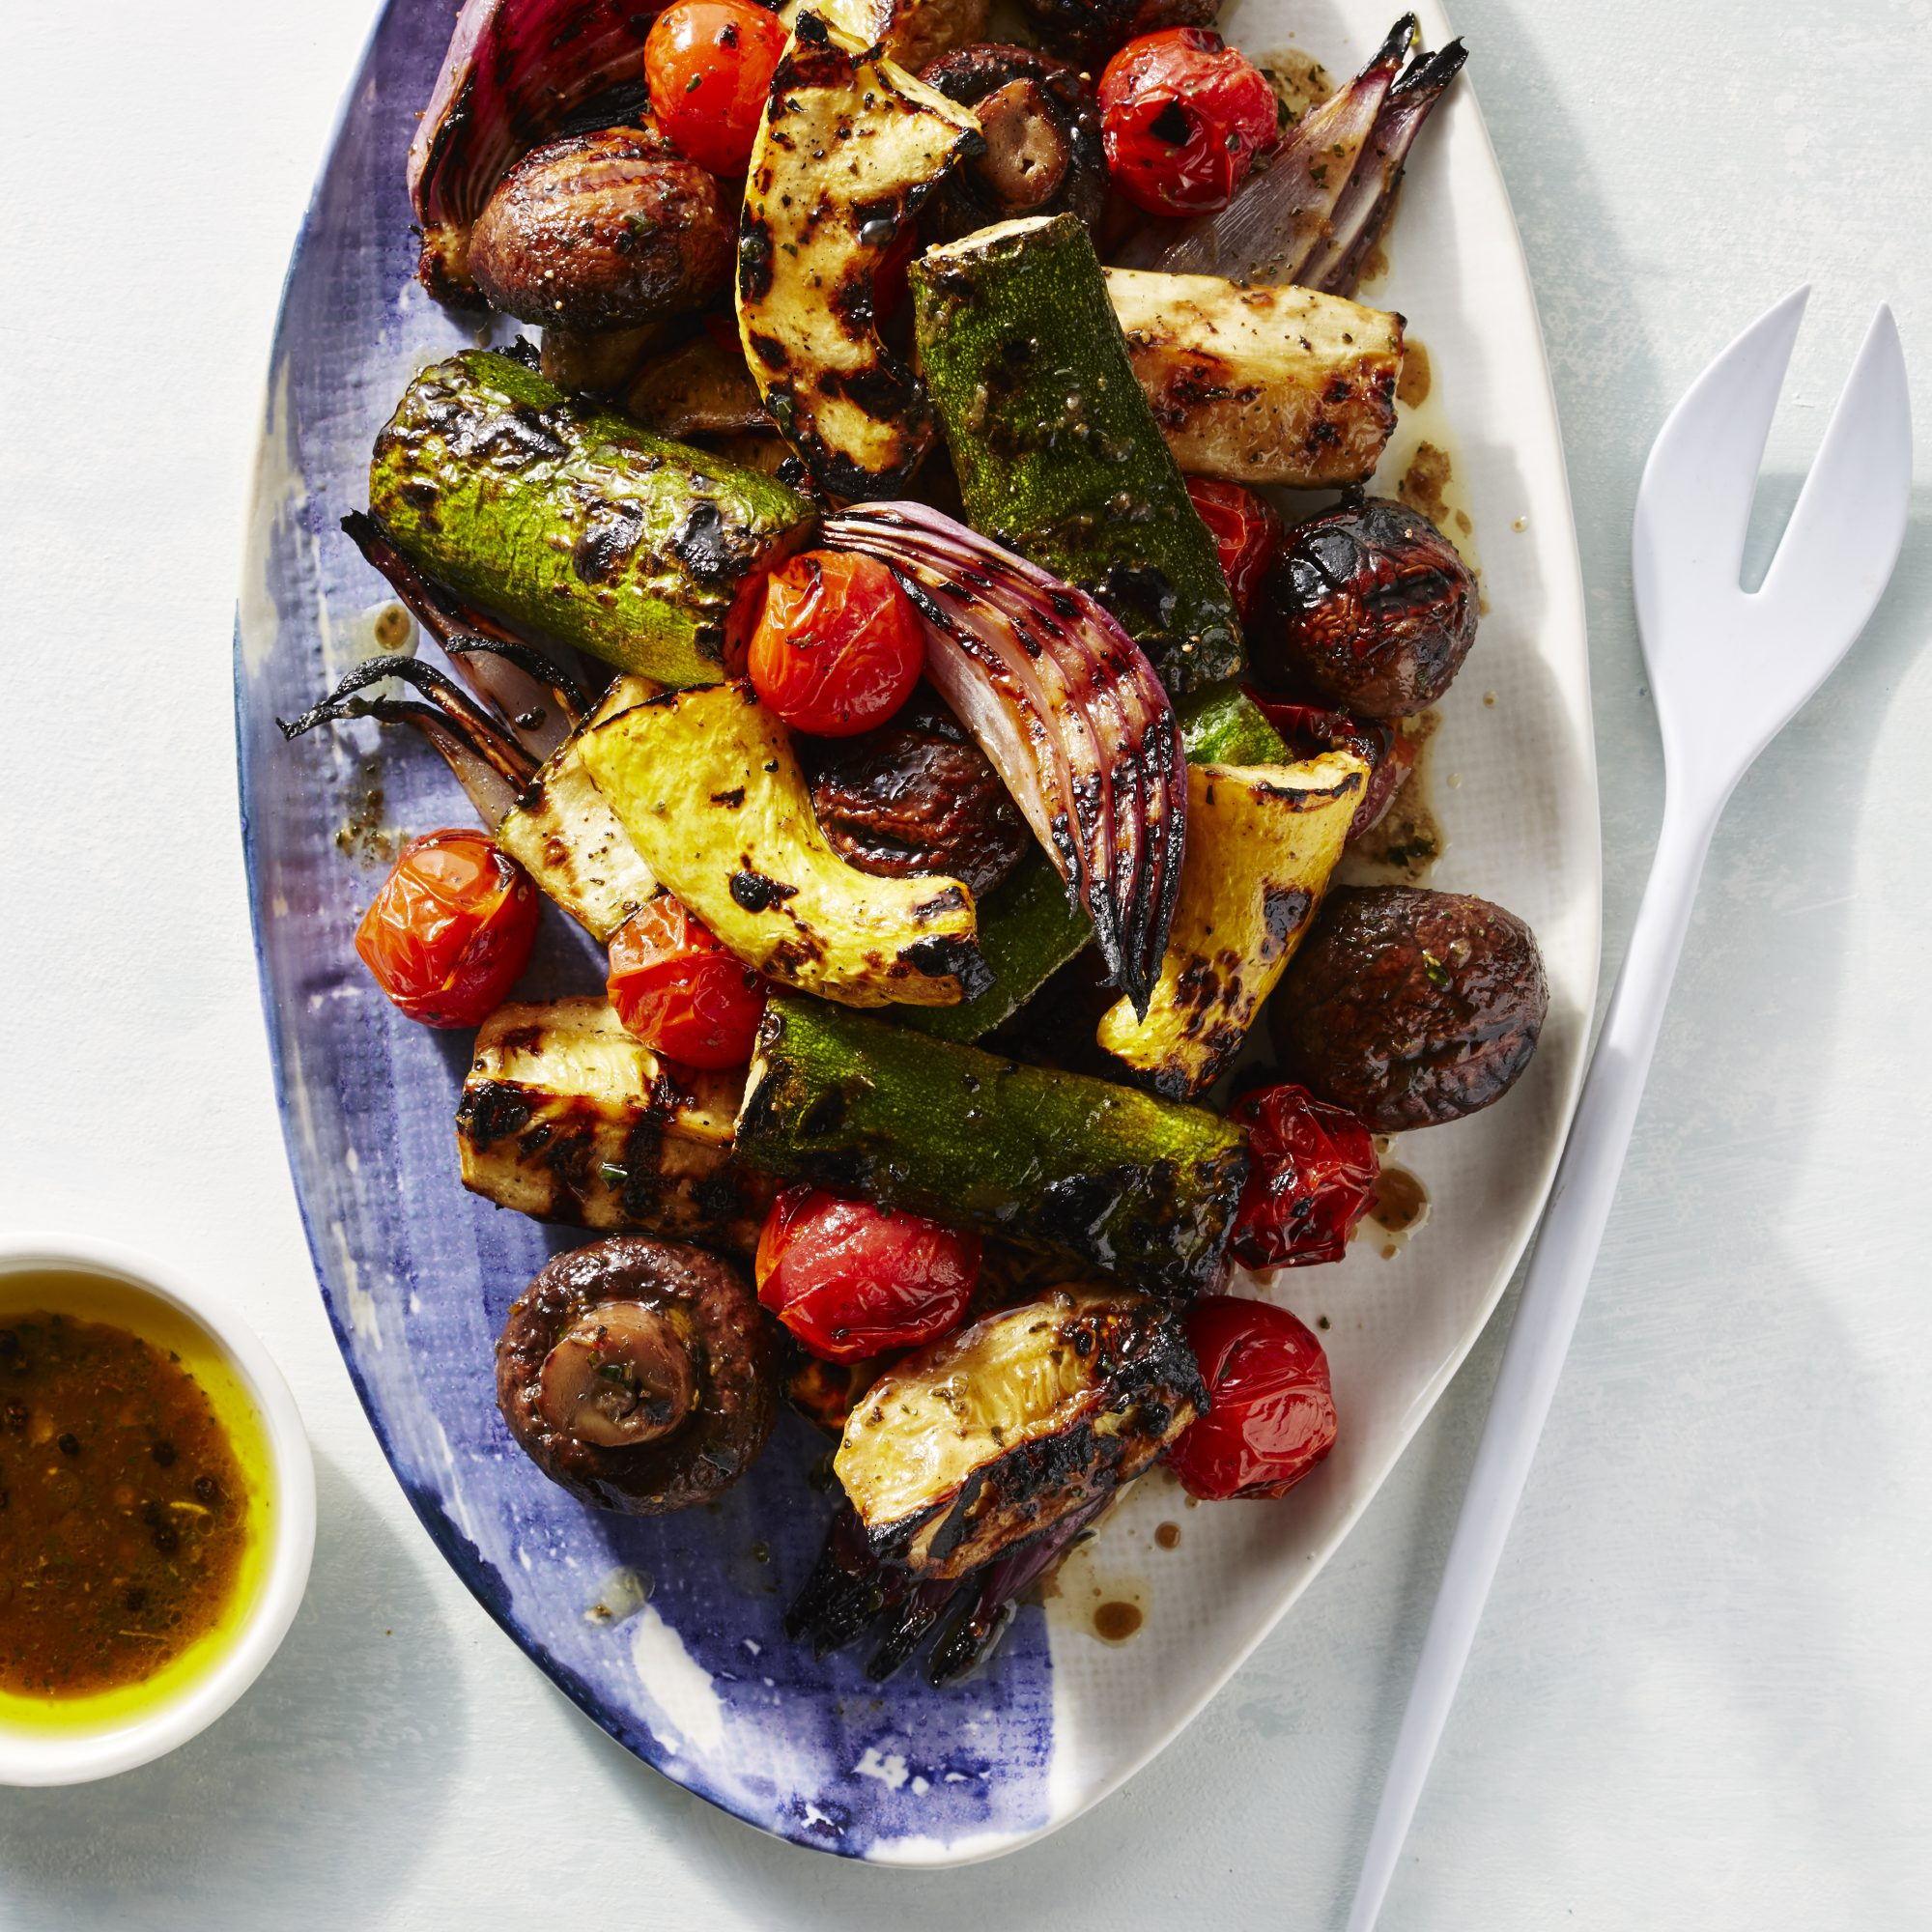 Marinated, Grilled Summer Vegetables